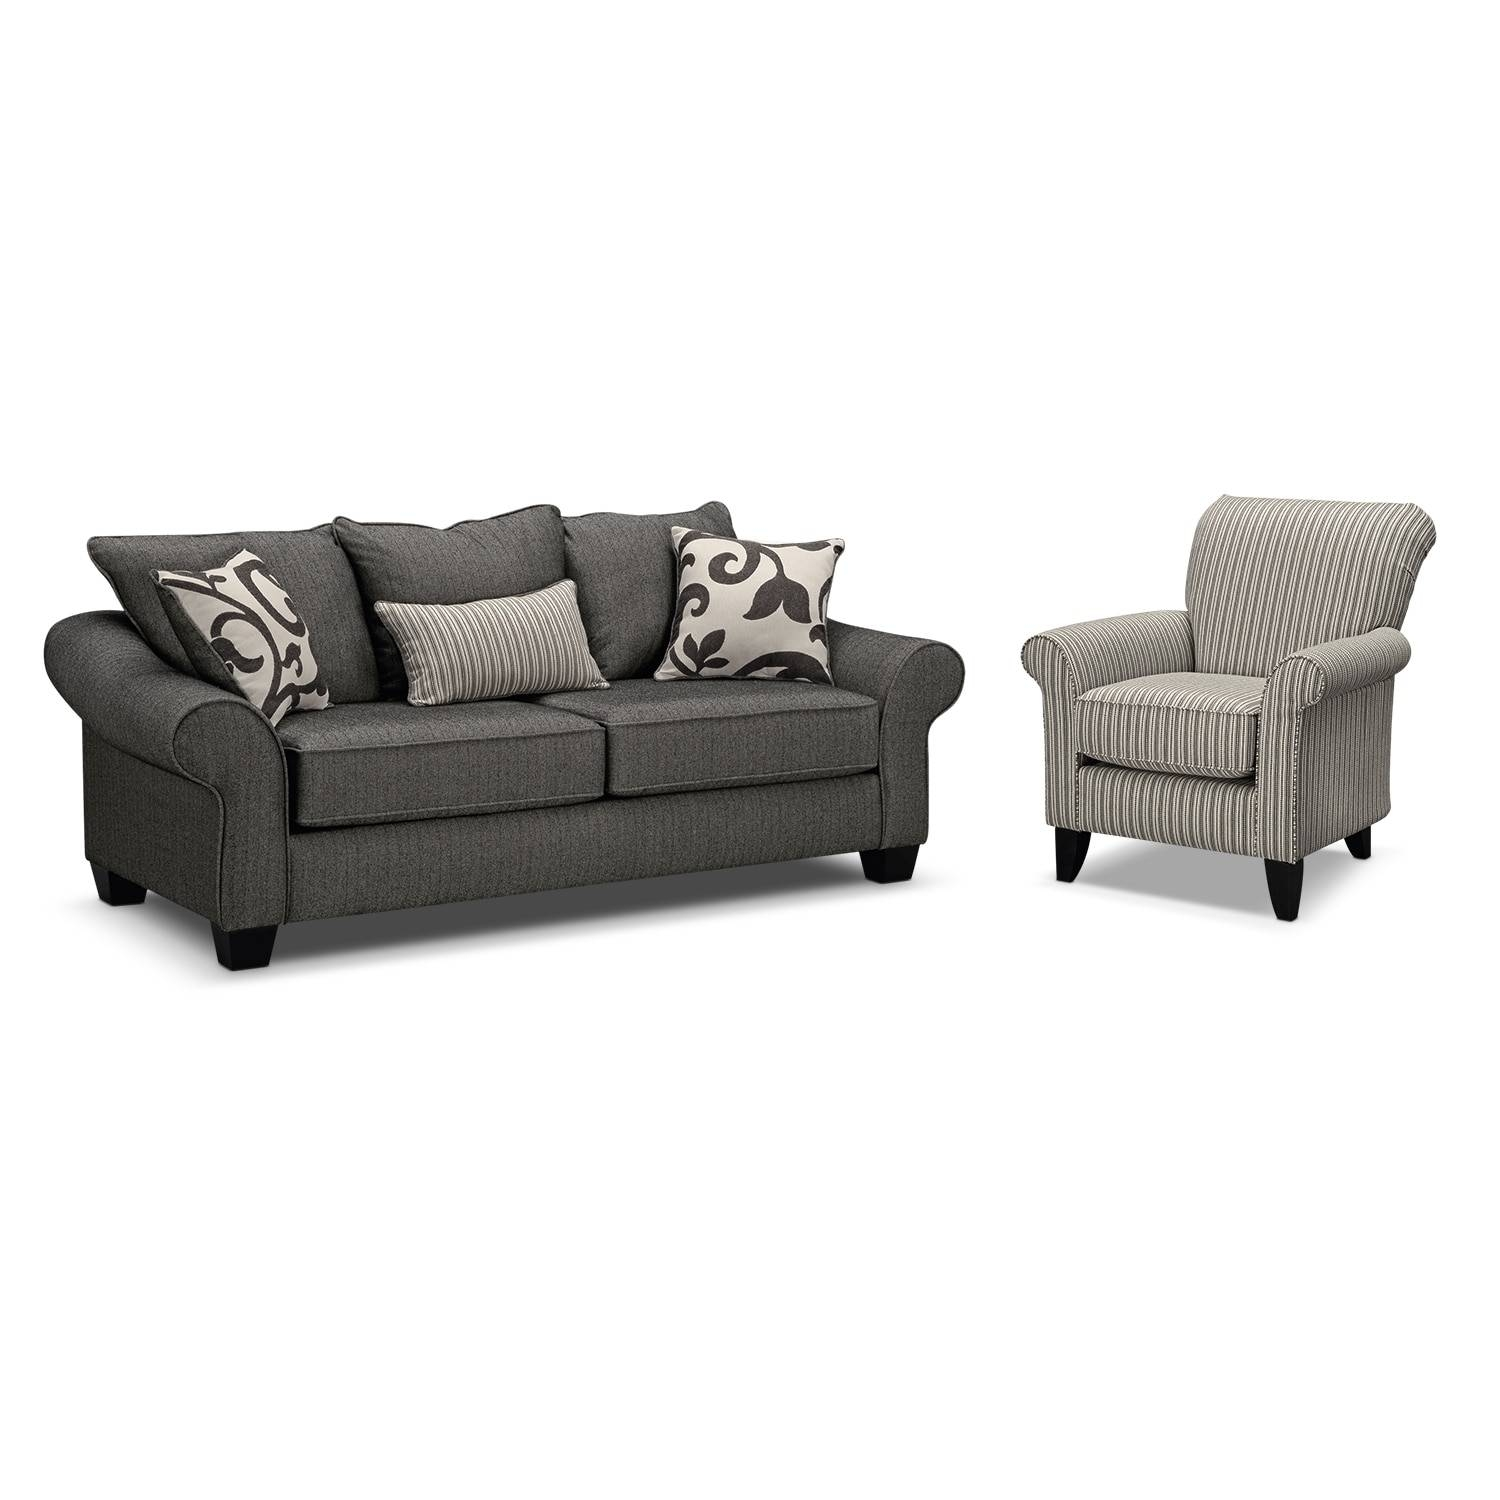 Colette Sofa And Accent Chair Set - Gray | Value City Furniture with regard to Sofa and Chair Set (Image 11 of 30)